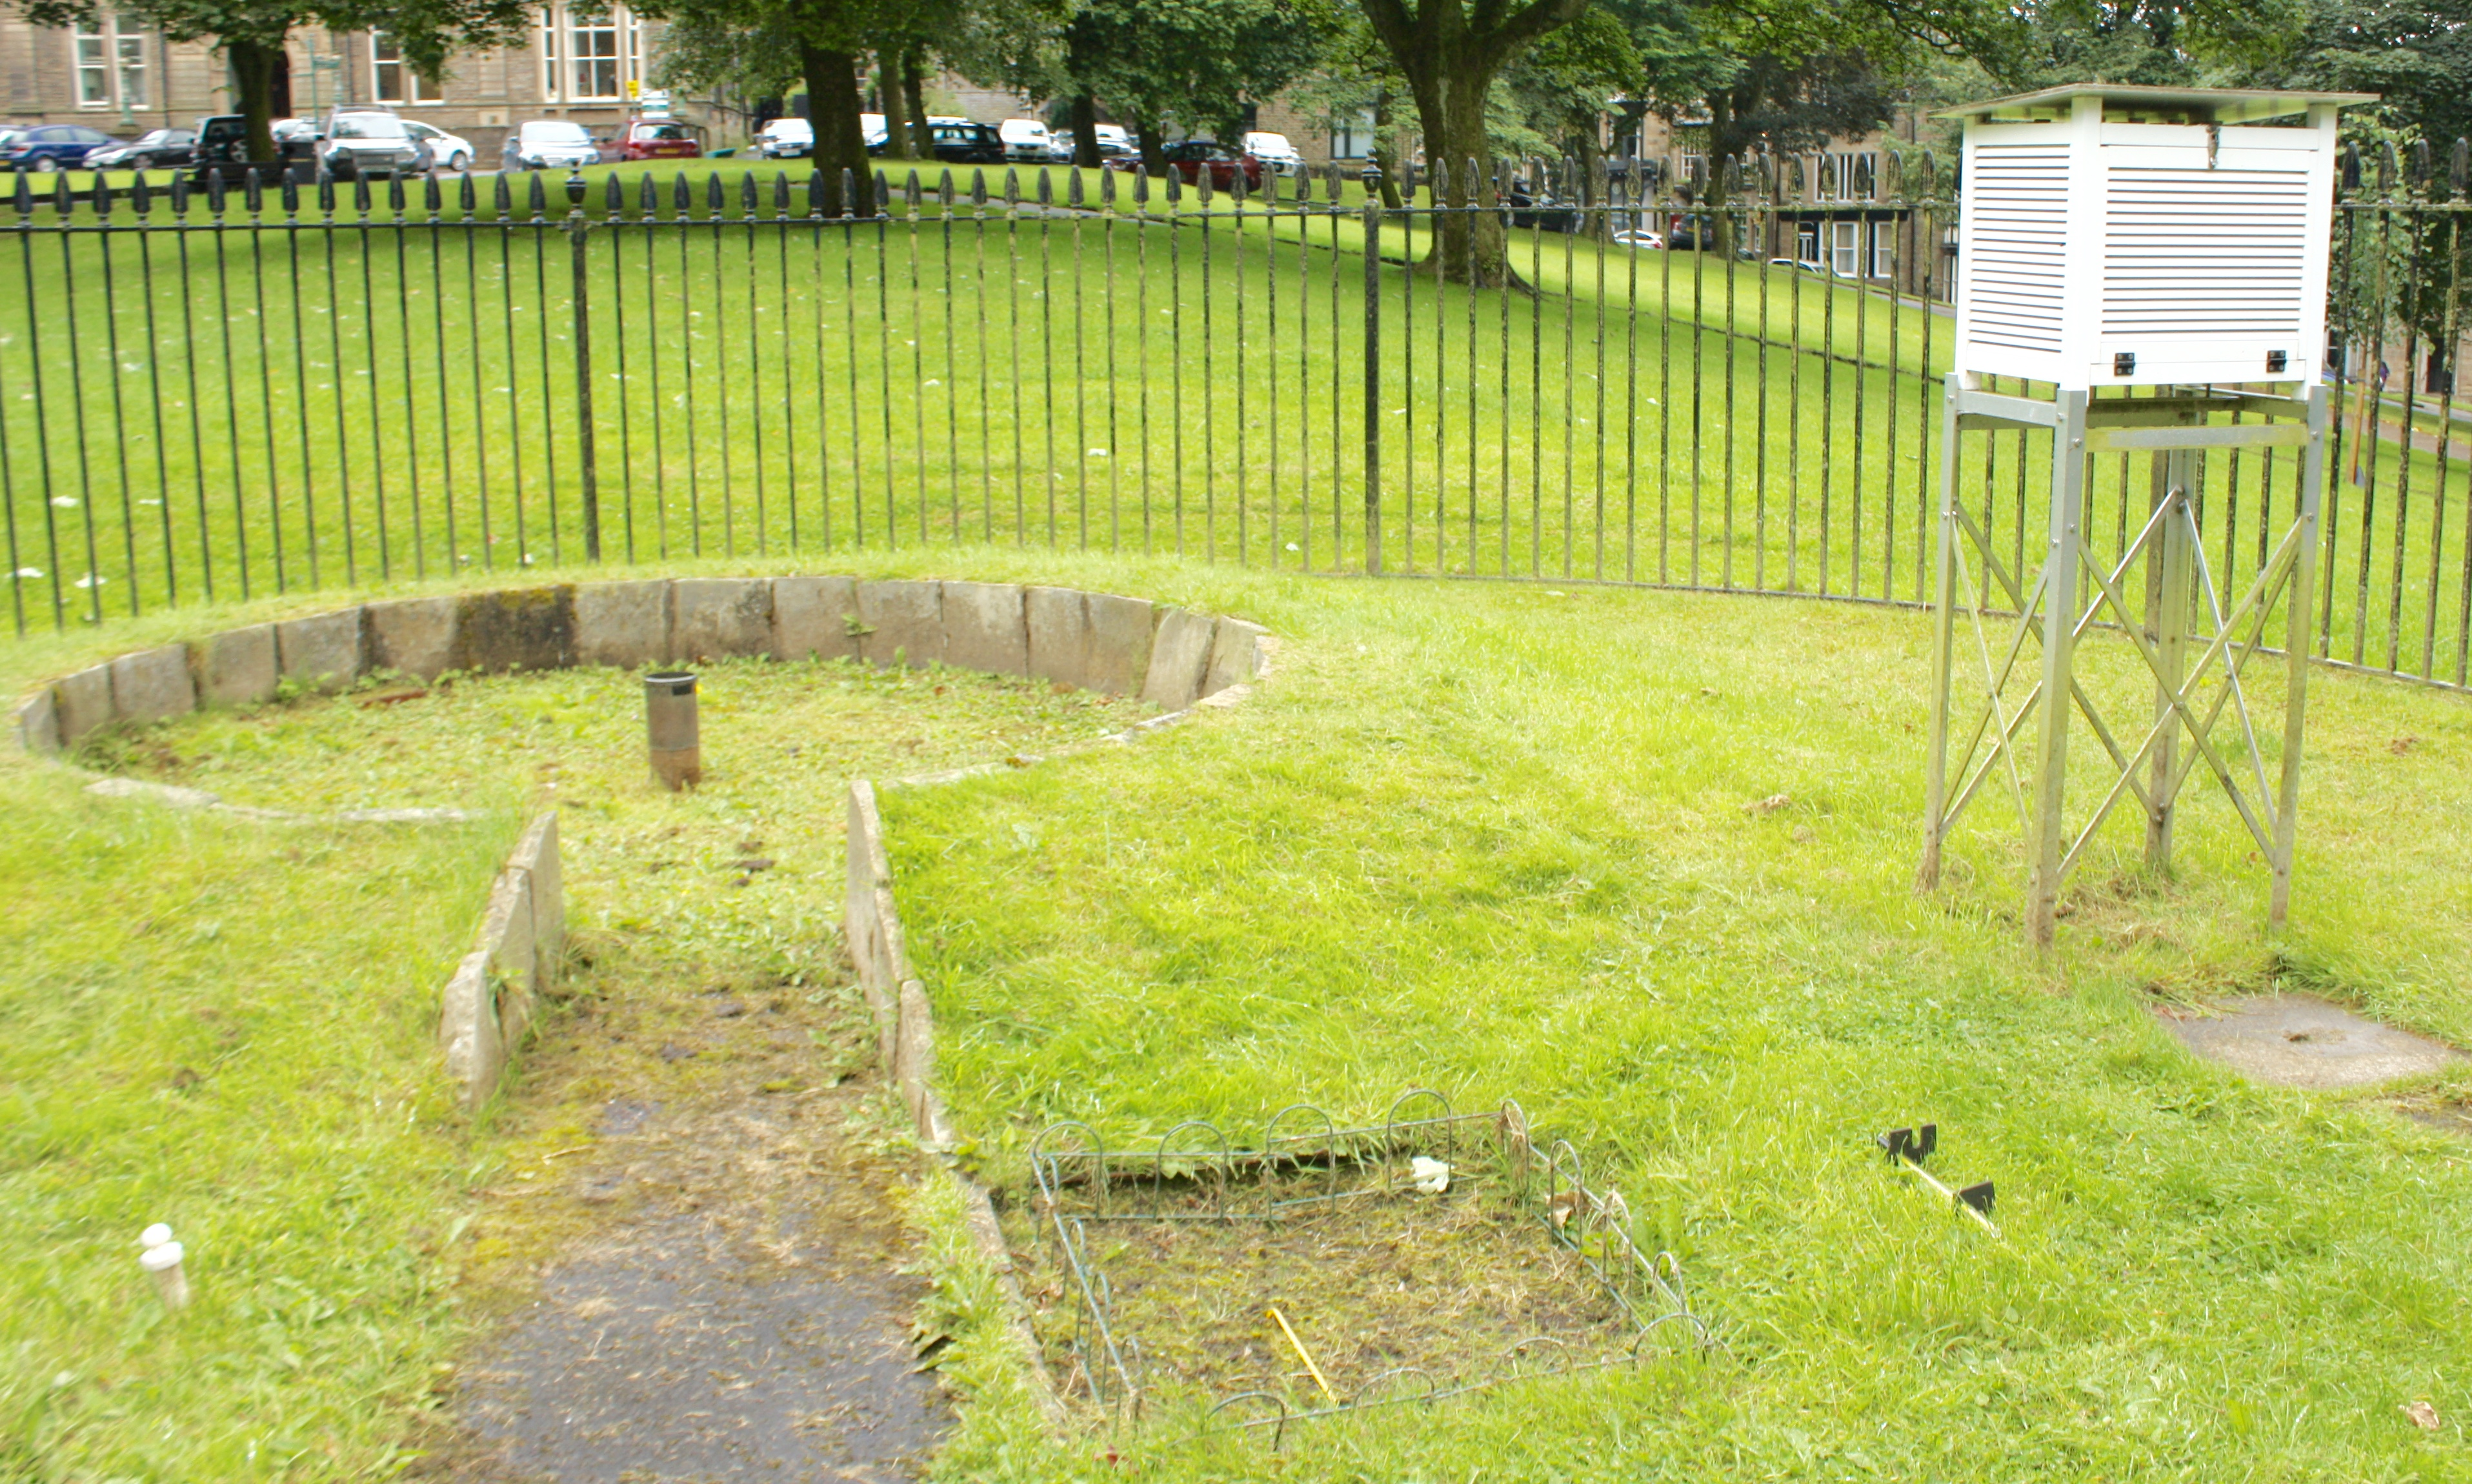 buxton climatological station dating back more than 150 years is